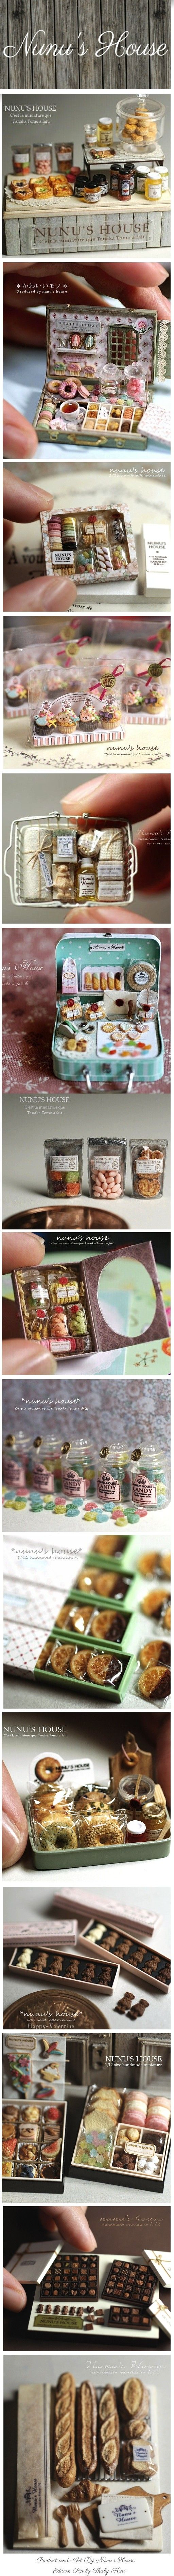 "Teeny weeny weeny. FANTASTIC ""MINIATURE PACKAGING"" (By Nunu's House)- Dollhouse products ."